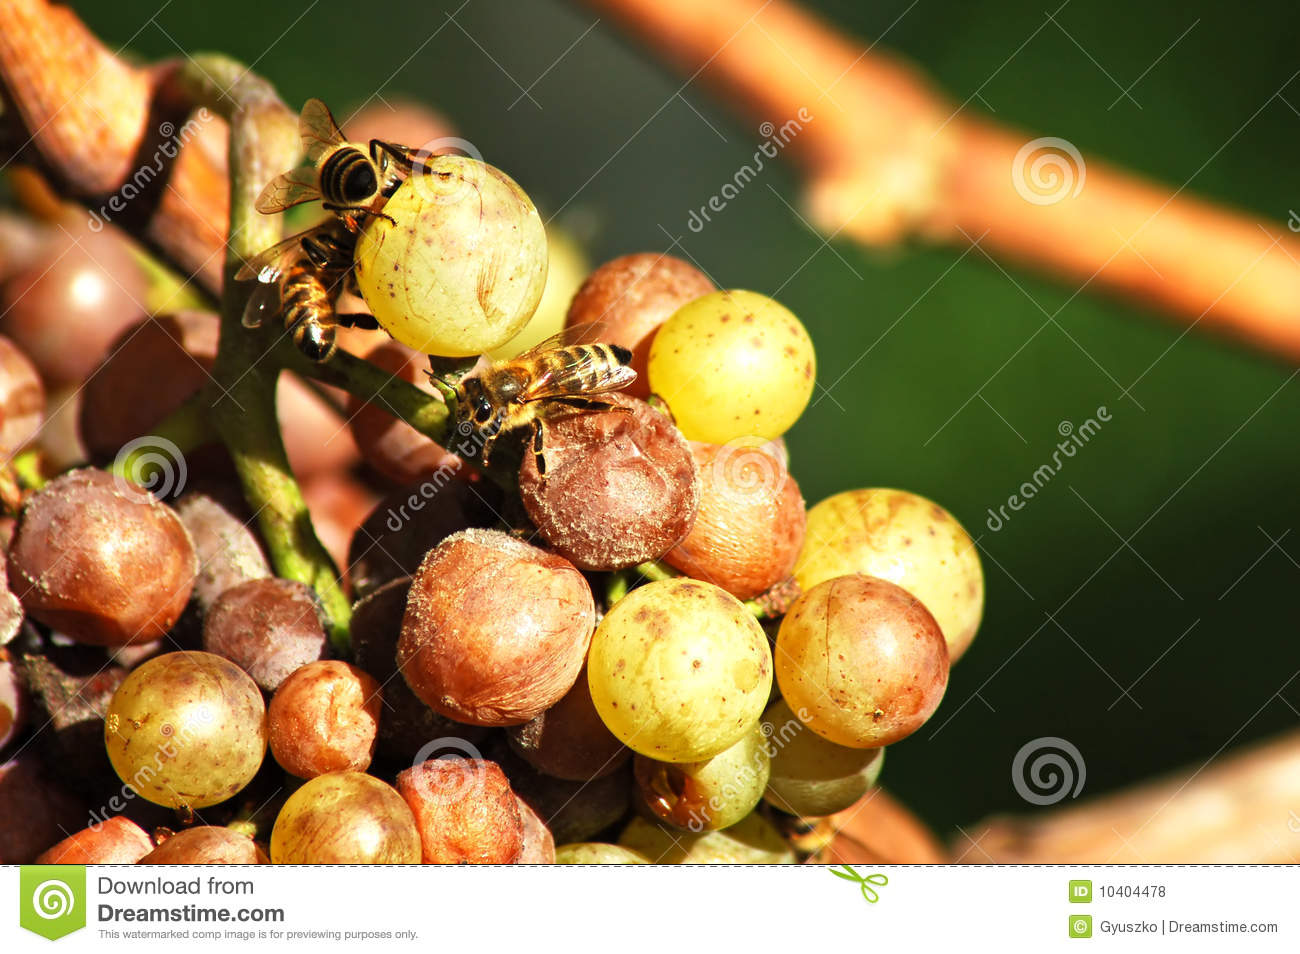 Noble rot - Wikipedia